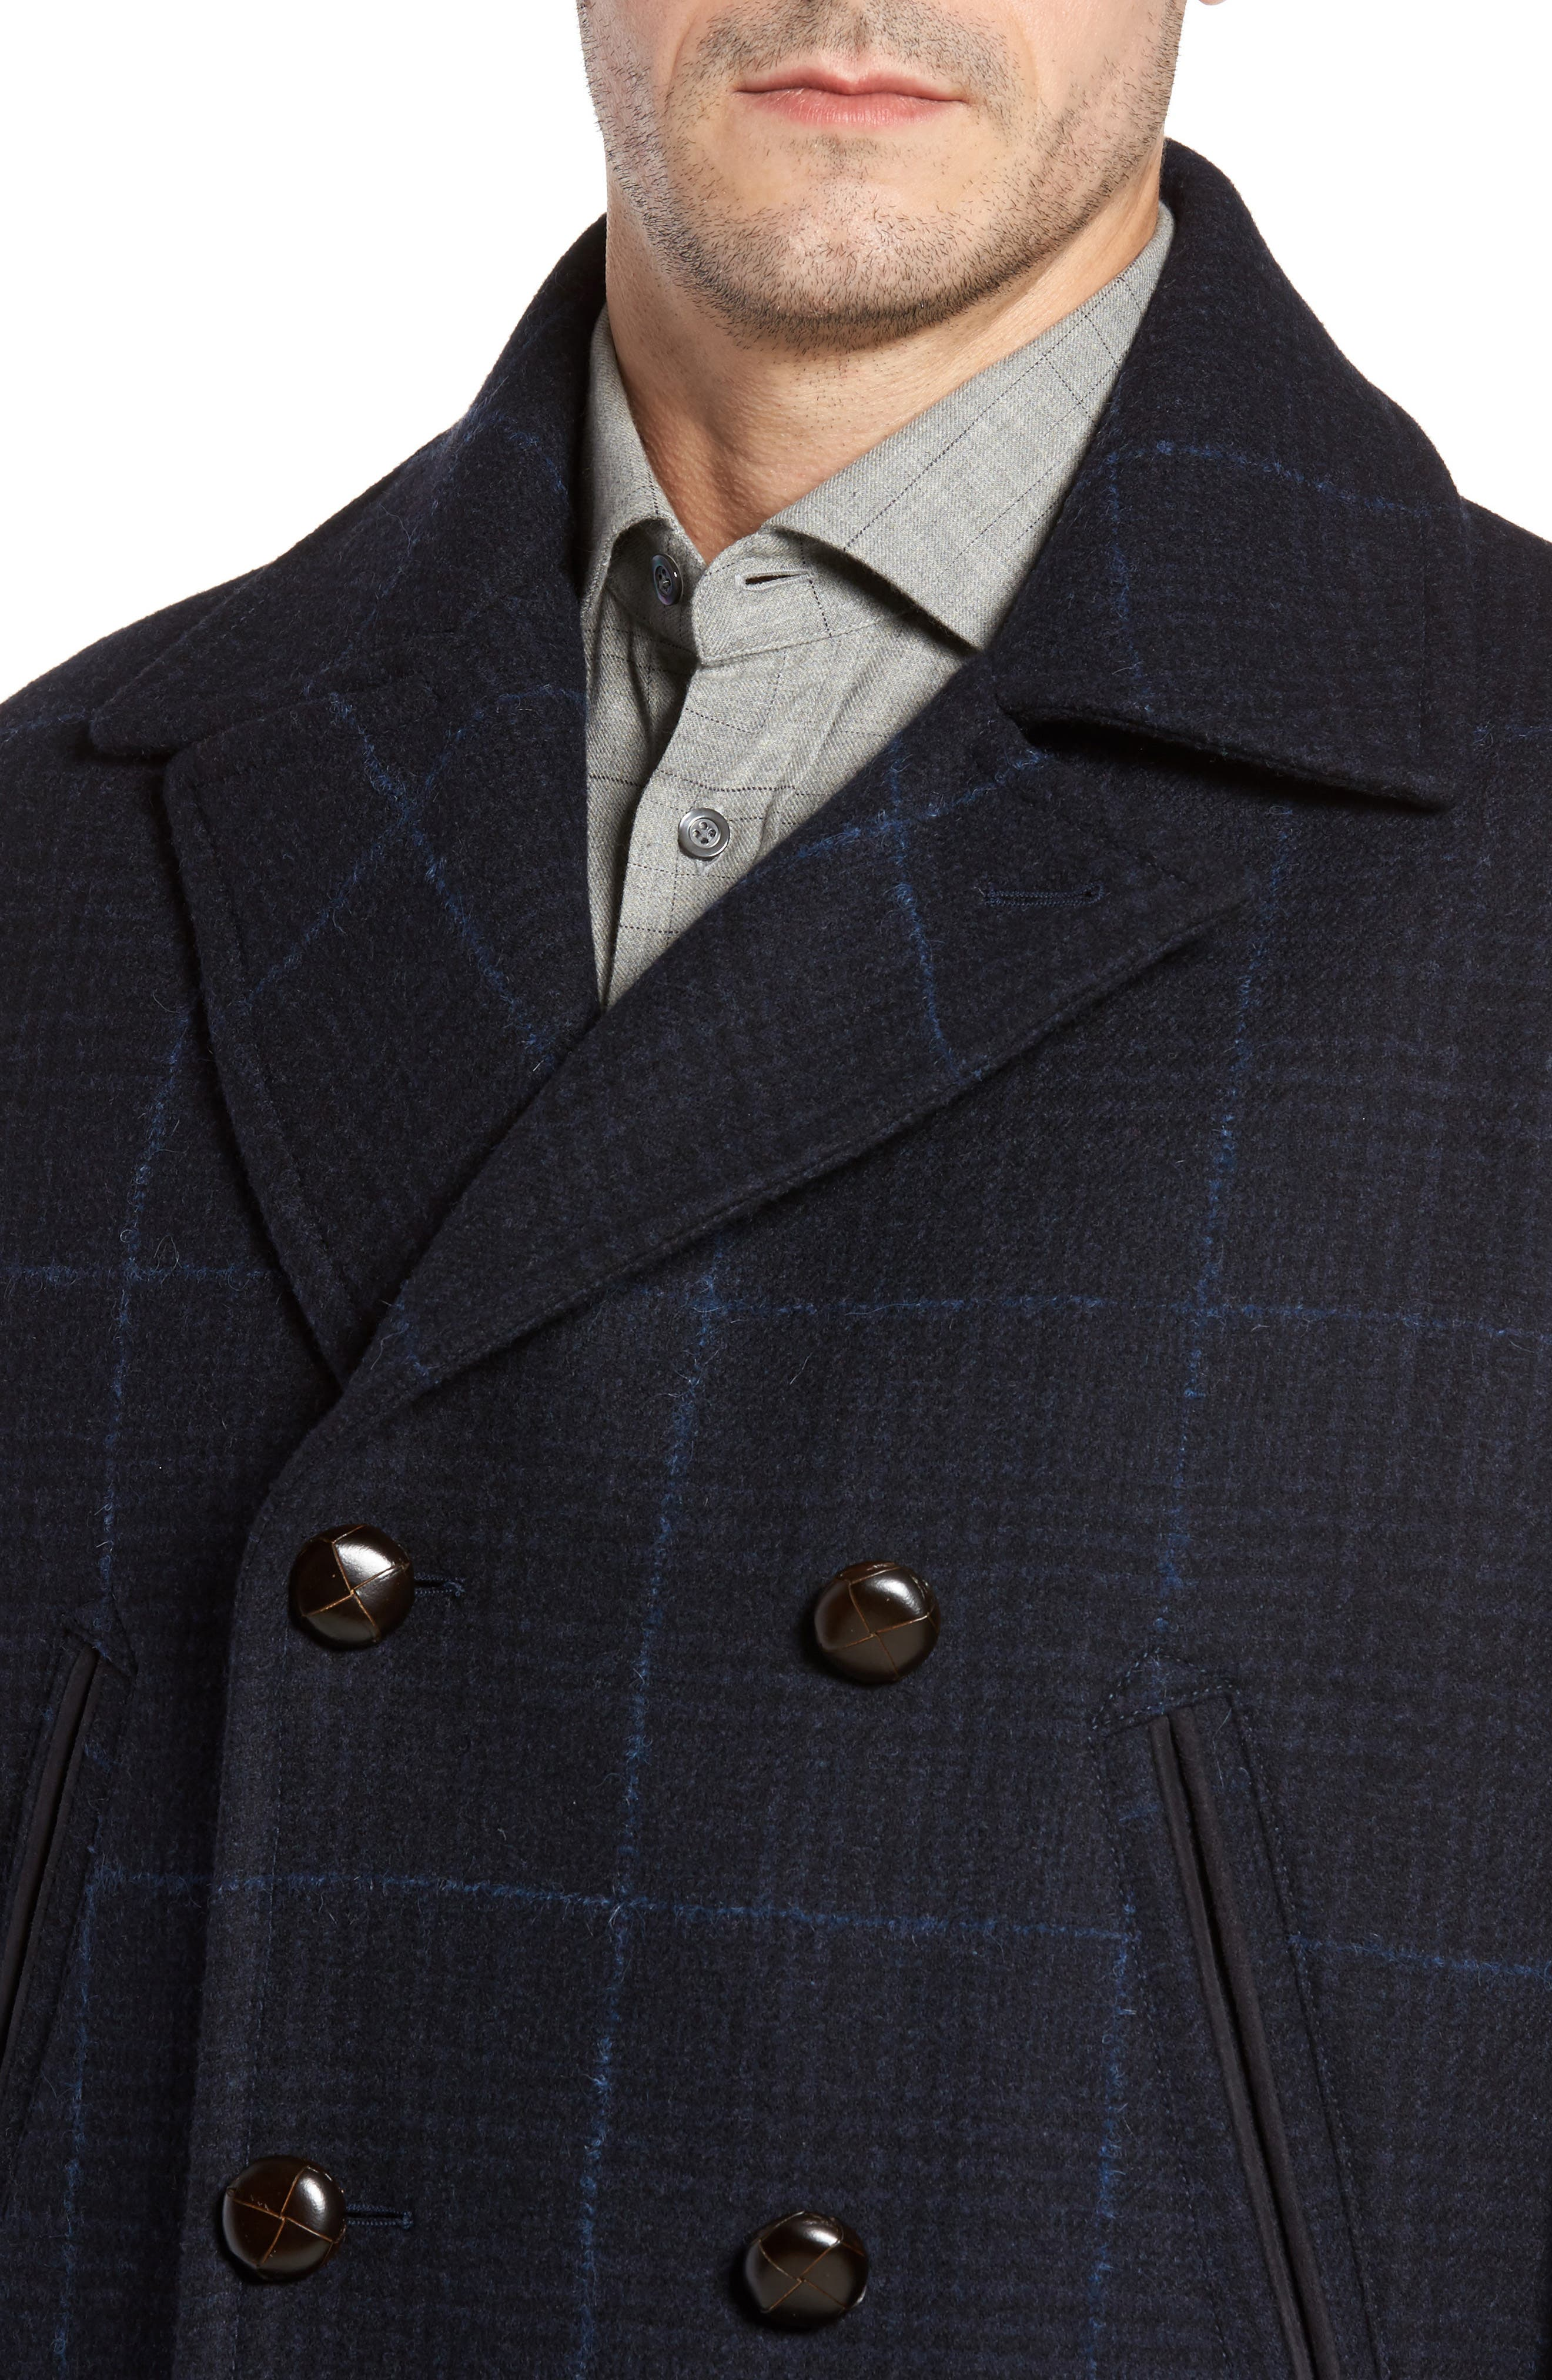 Wool Plaid Peacoat,                             Alternate thumbnail 4, color,                             Navy